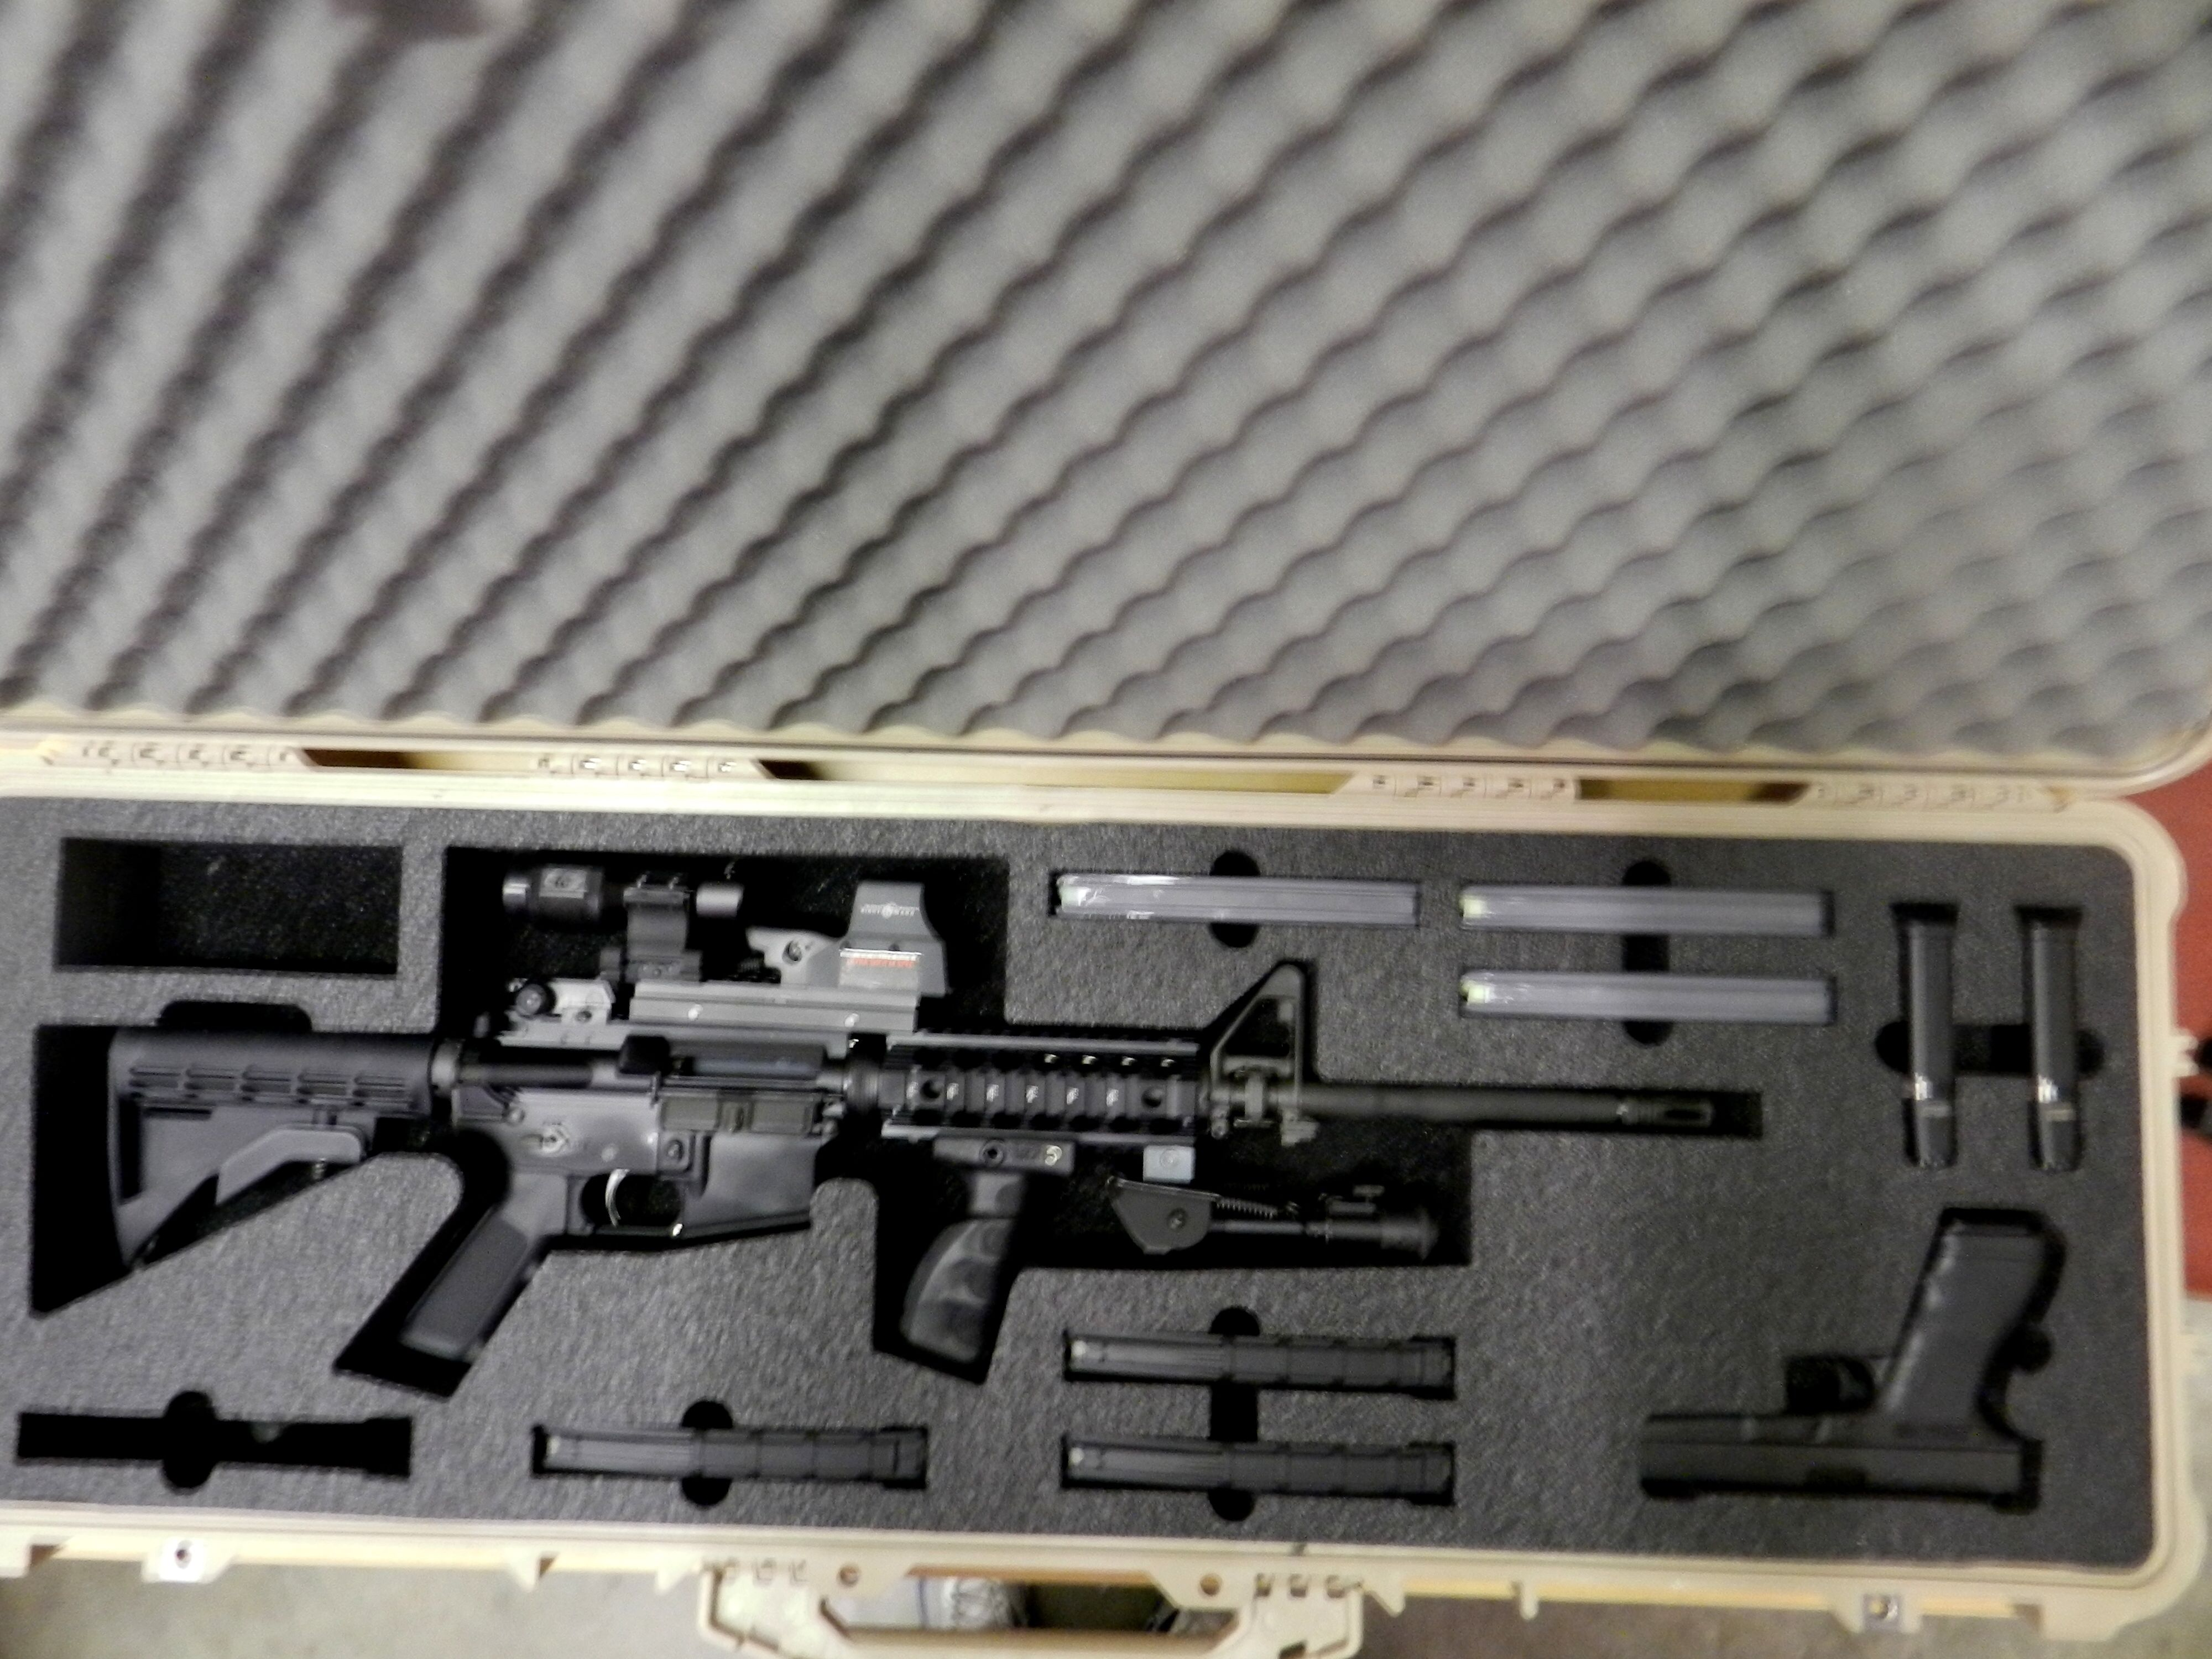 Pin on Pelican cases